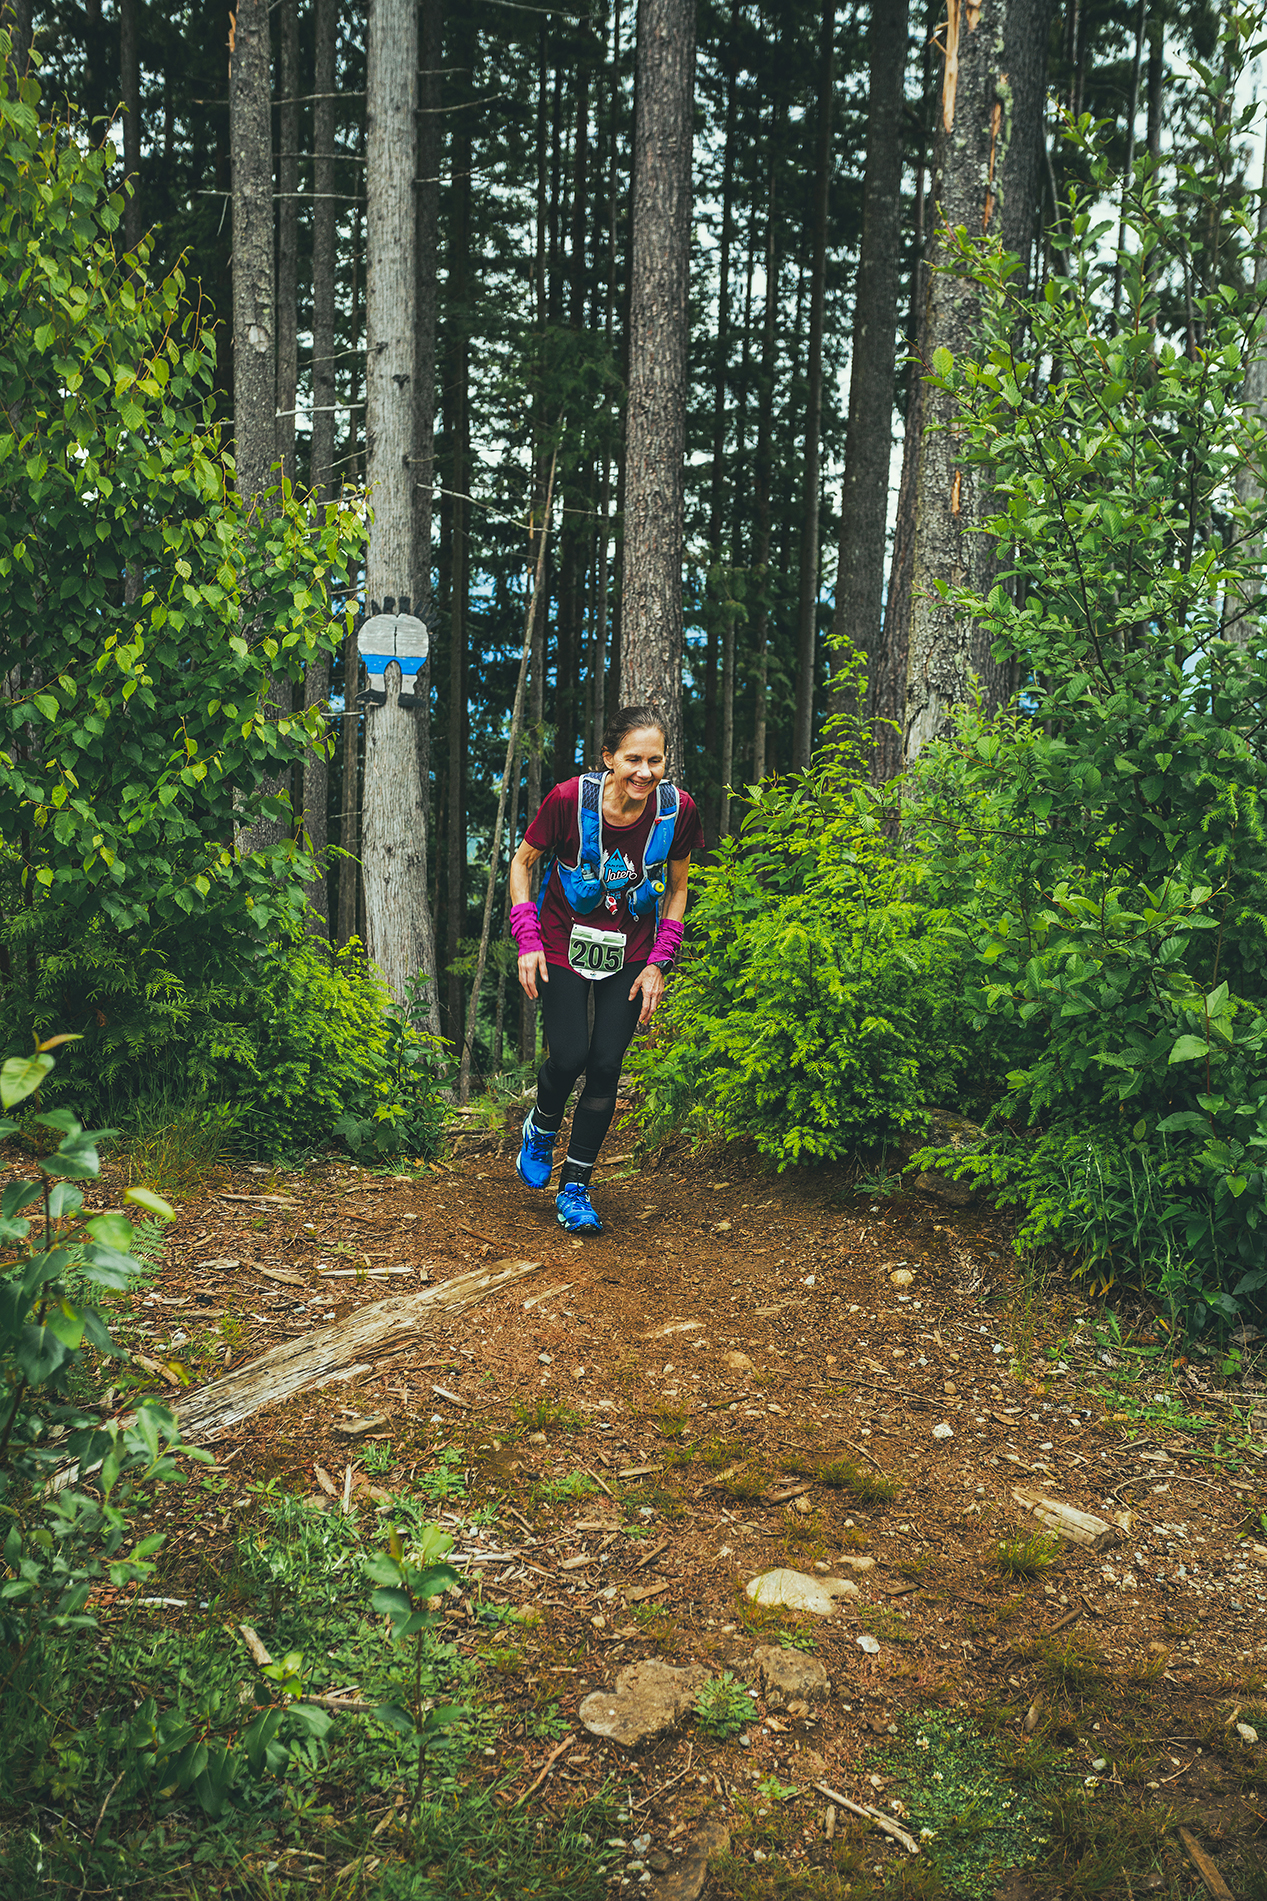 Fraser Valley Trail Races - Bear Mountain - IMG_2705 by Brice Ferre Studio - Vancouver Portrait Adventure and Athlete Photographer.jpg